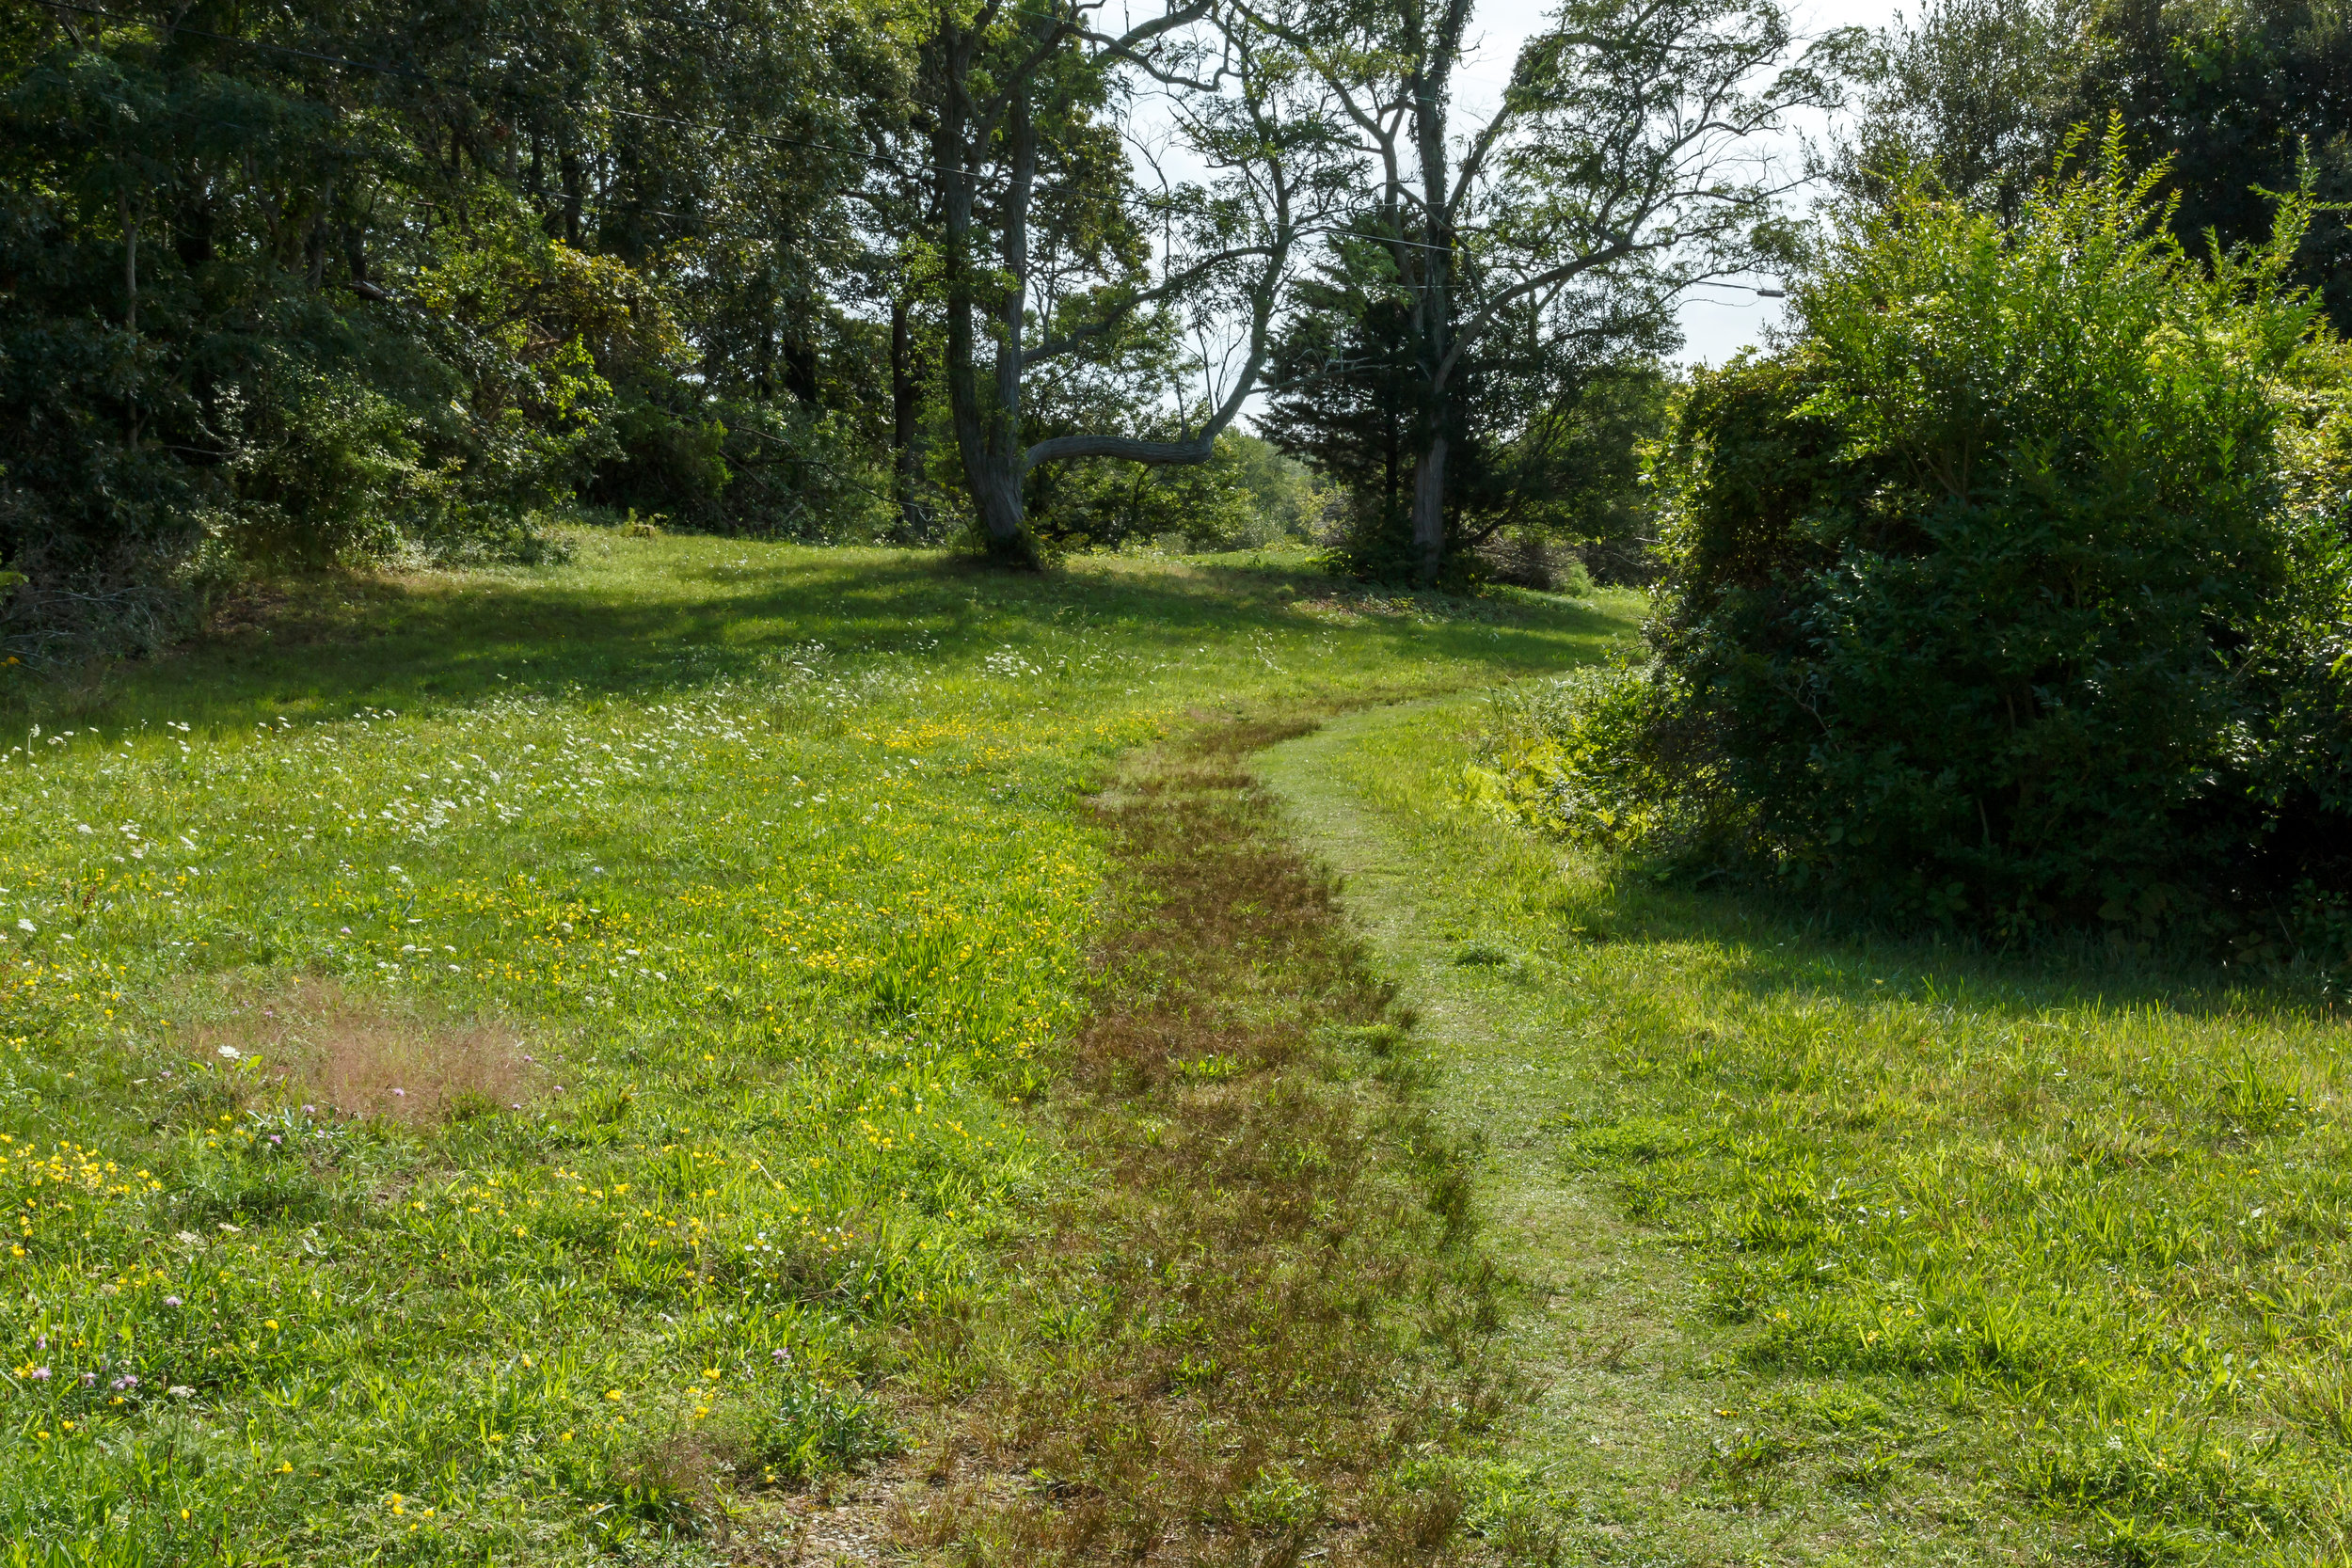 The darker vegetation running along the path is all path rush!